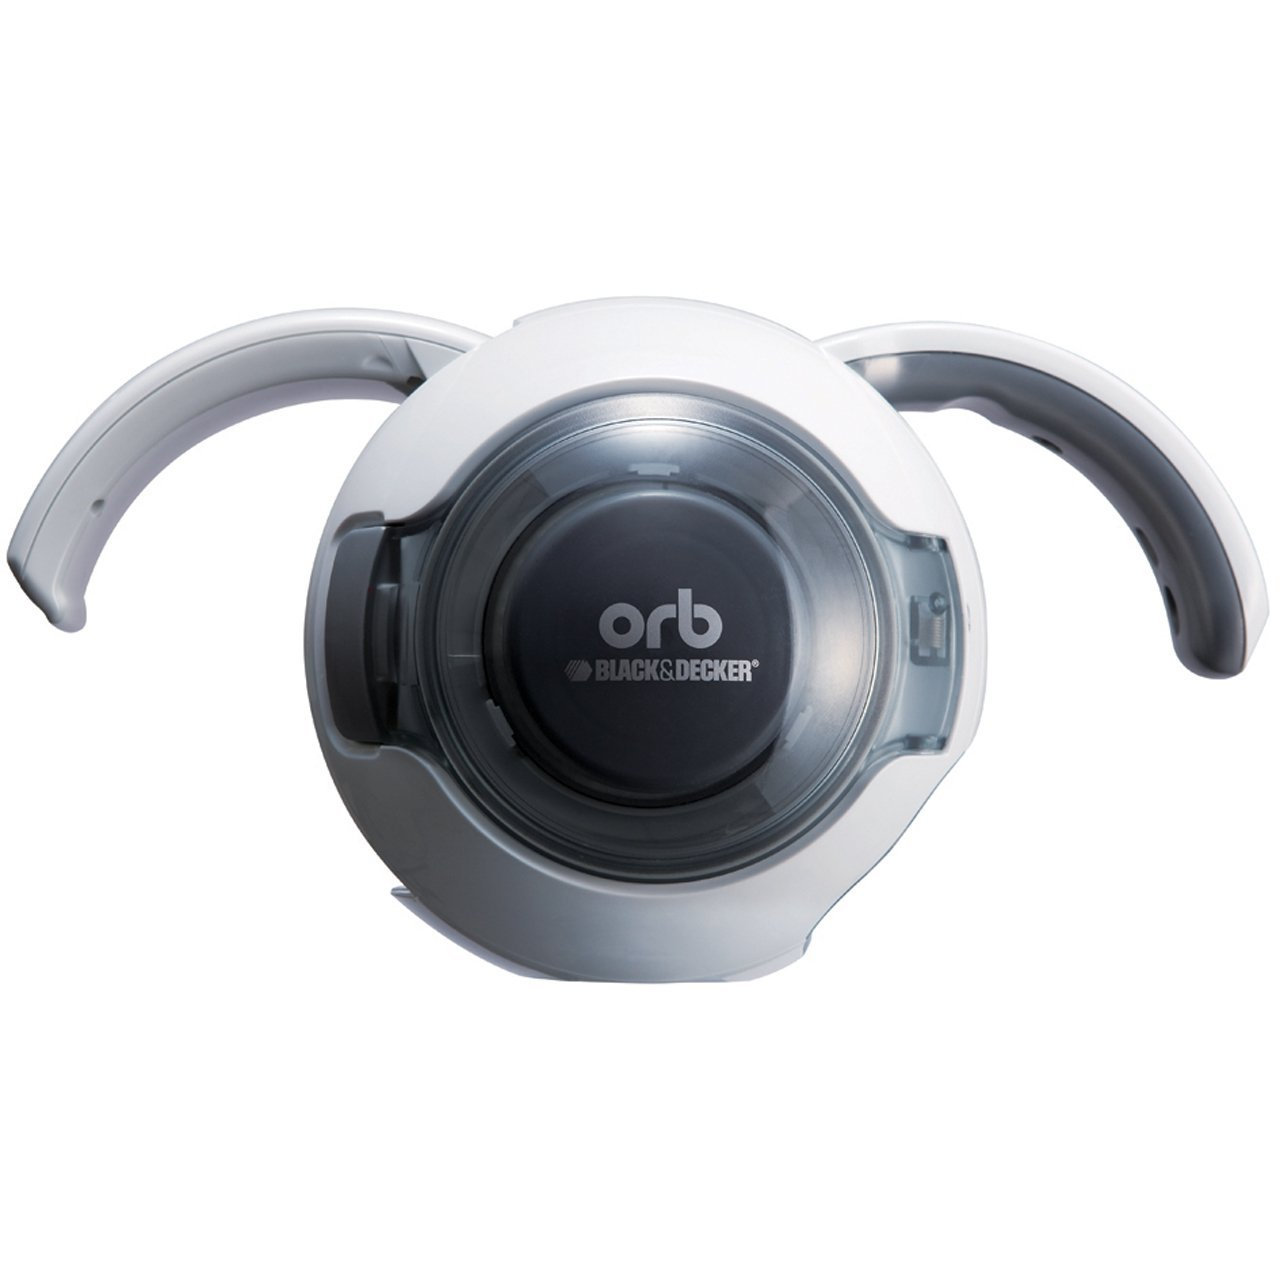 BLACK&DECKER orb(オーブ) ORB48W